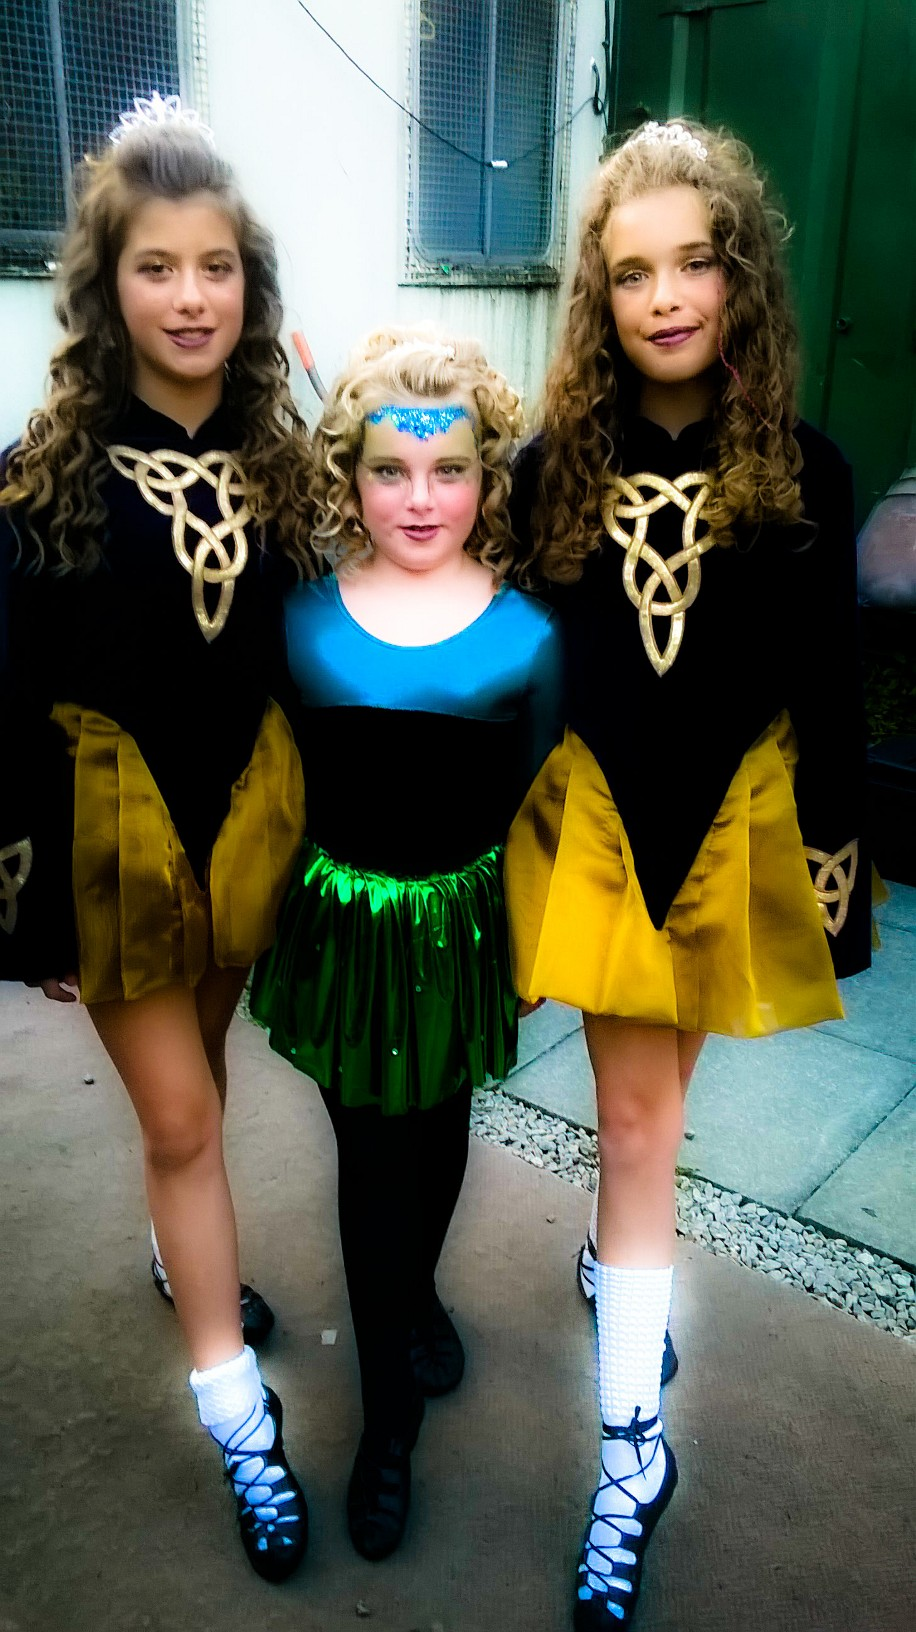 Sterts theatre Irish Dancers